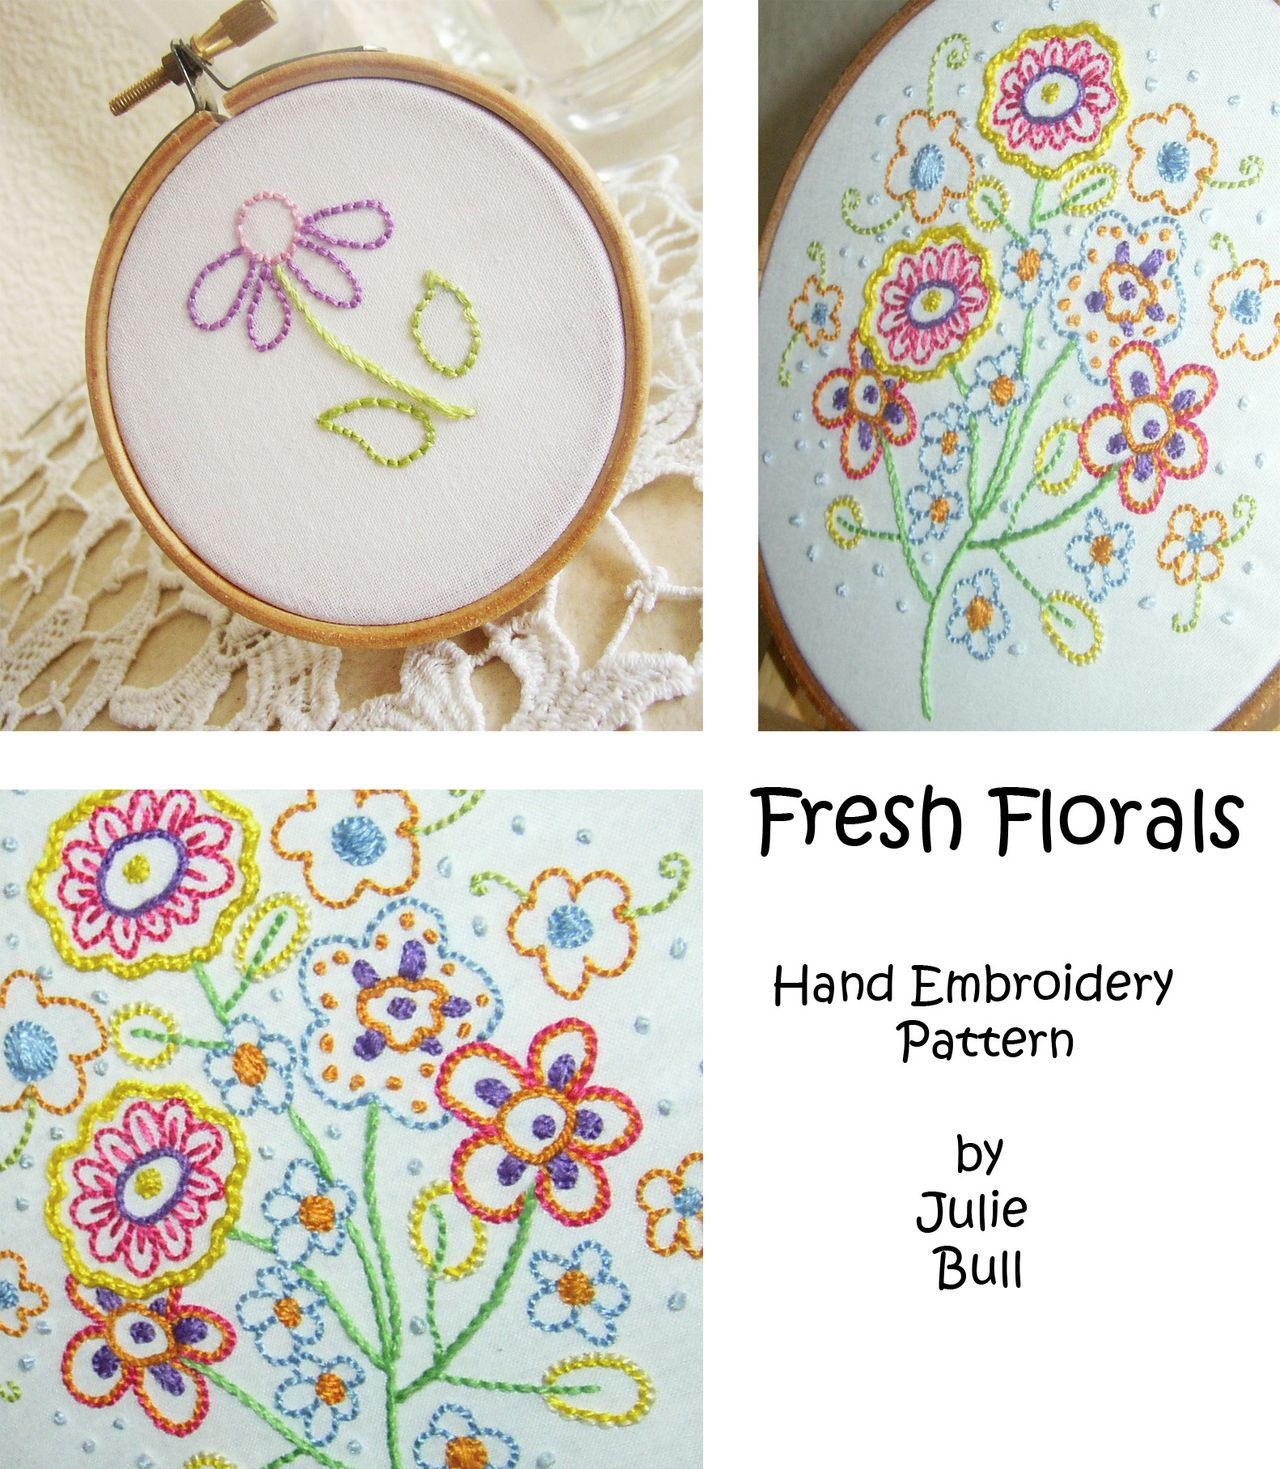 Fresh Florals Embroidery Pattern